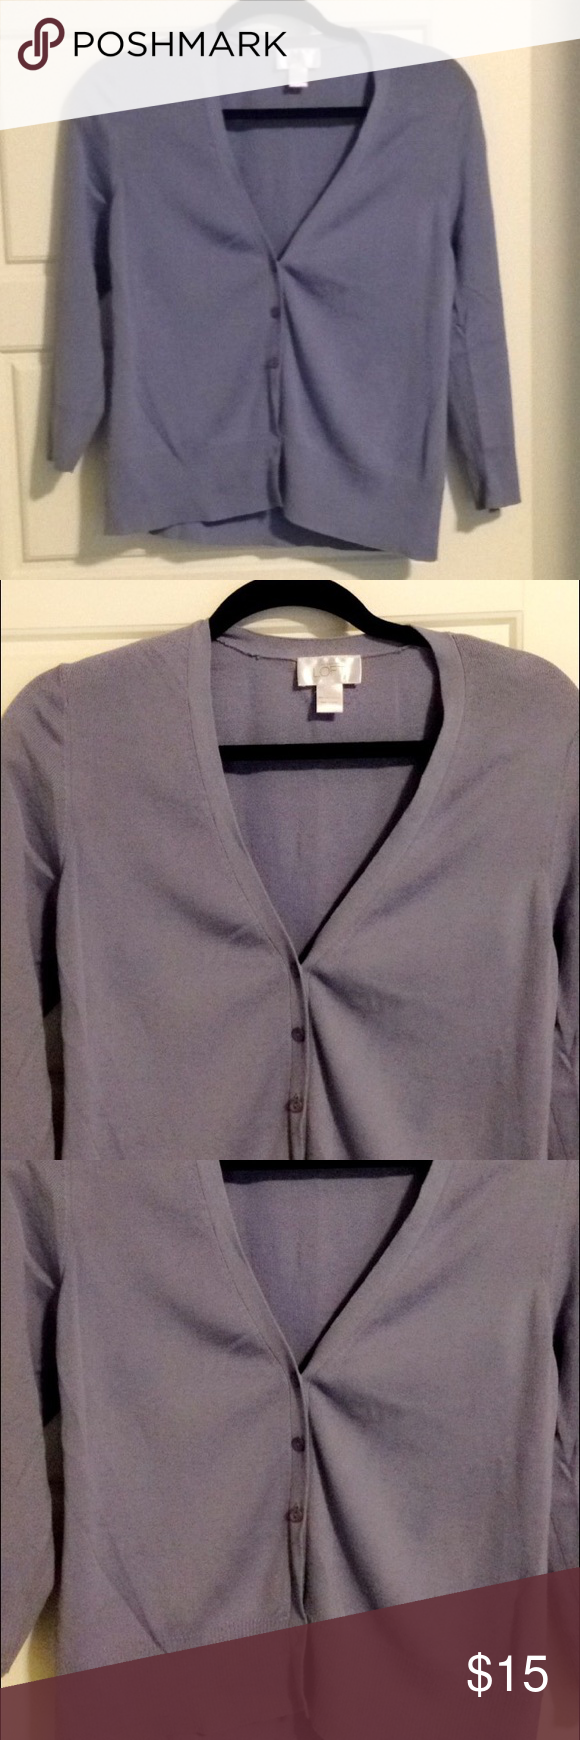 Loft light purple cardigan | Loft lighting, Light purple and Lofts